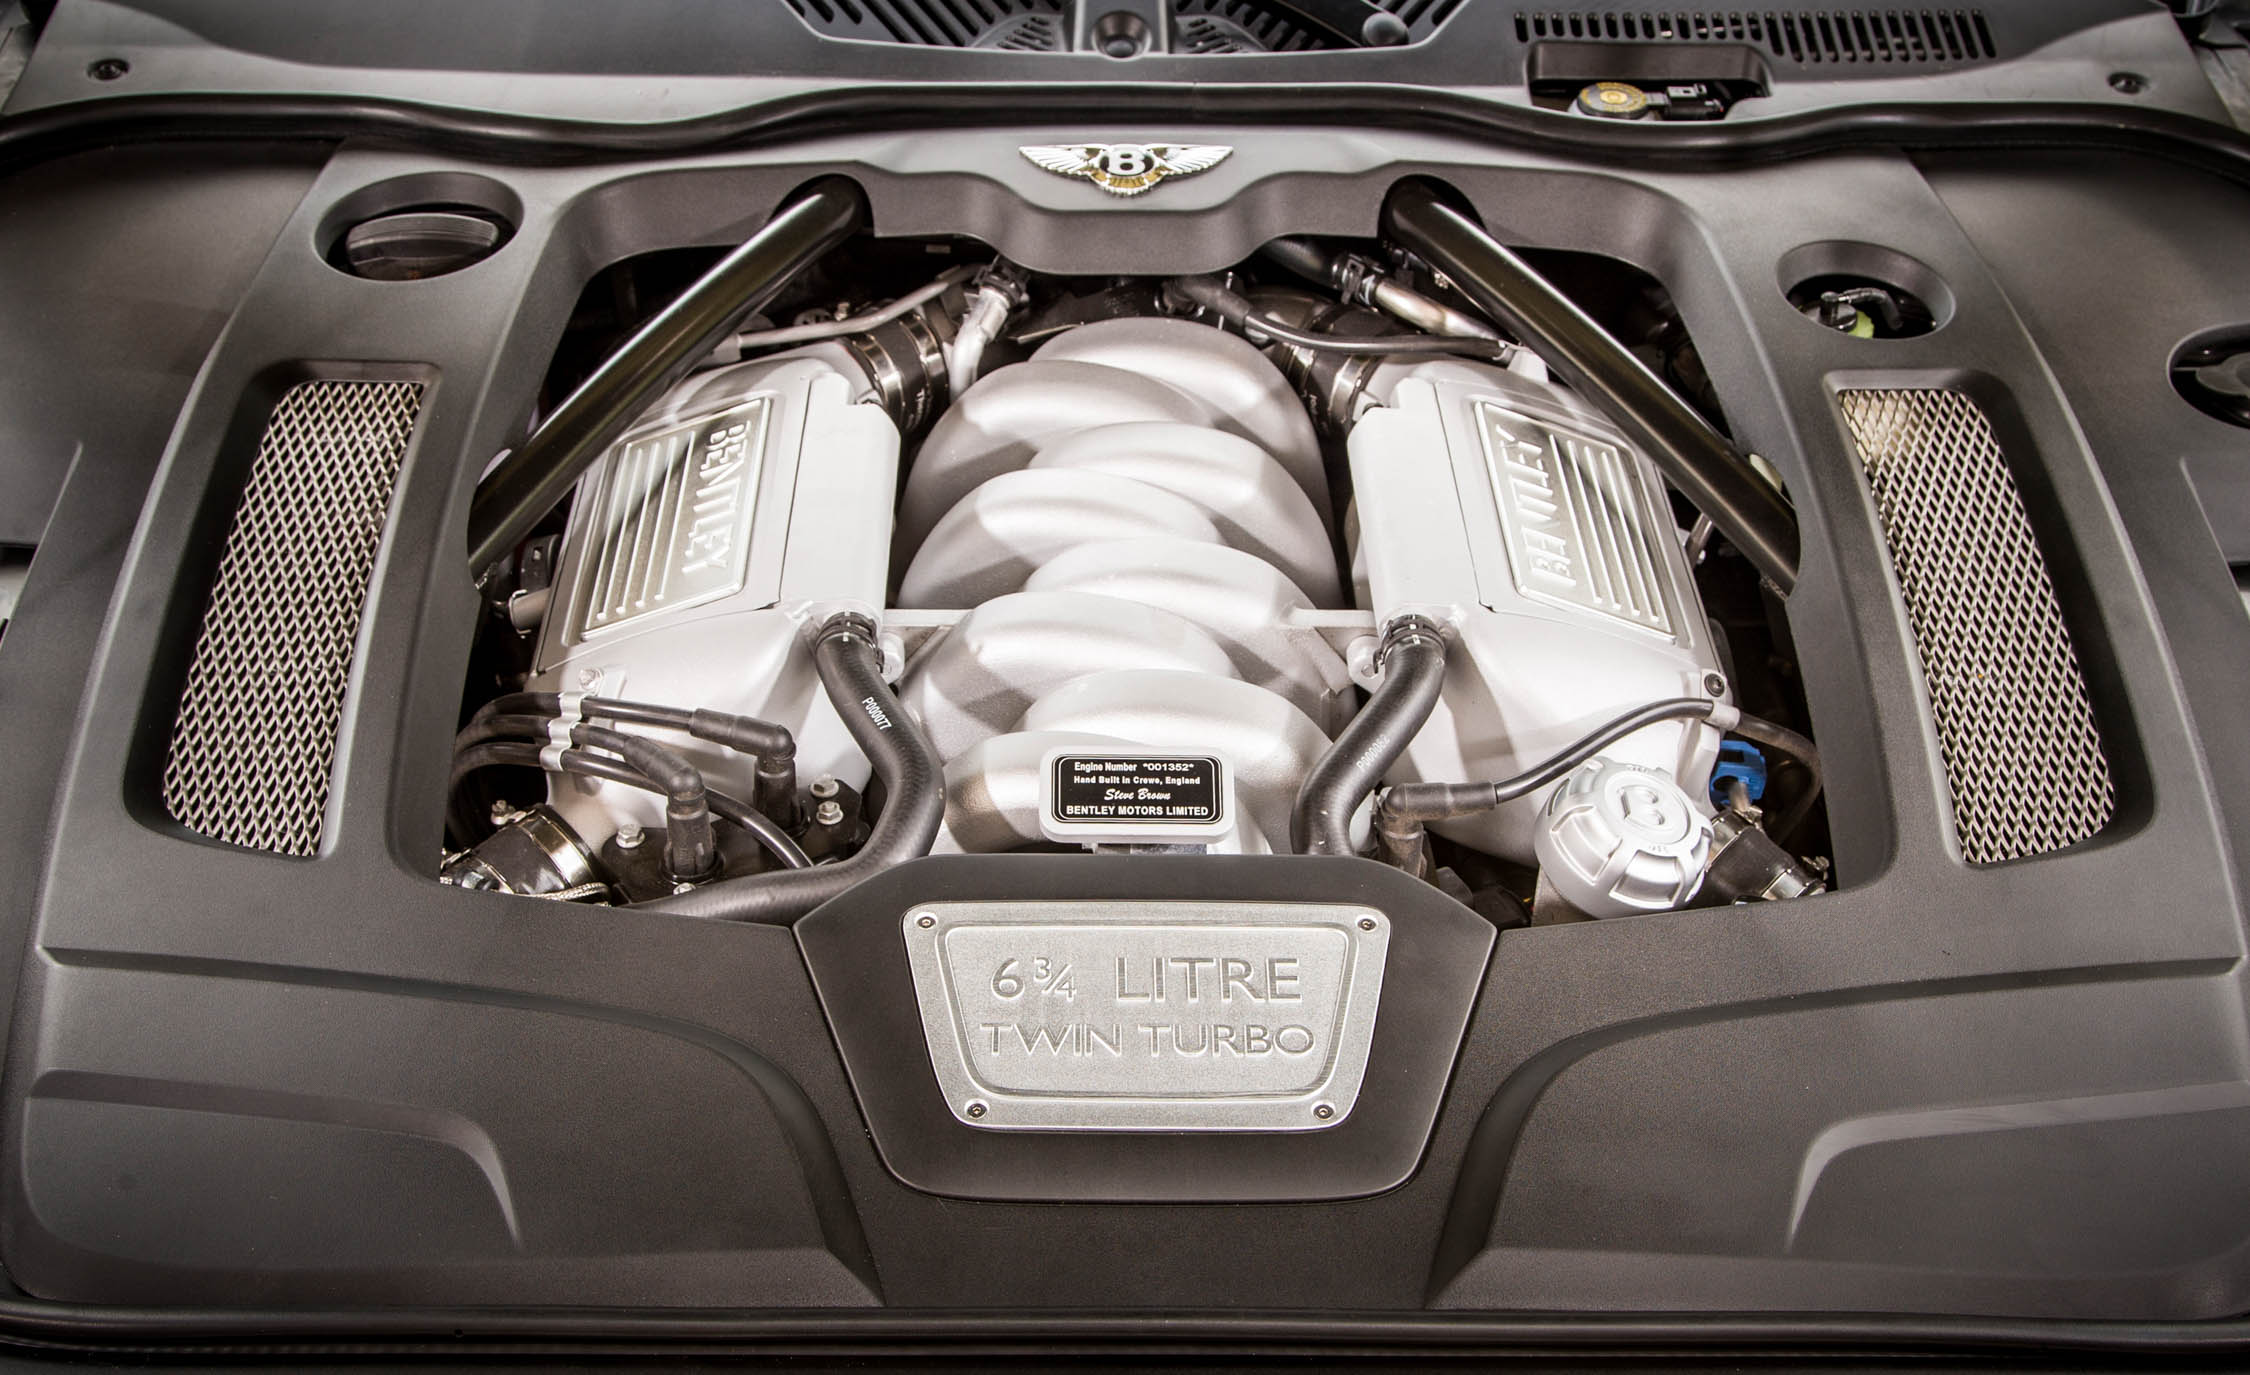 2017 Bentley Mulsanne Twin Turbocharged 6.75 Liter V 8 Engine (Photo 37 of 37)